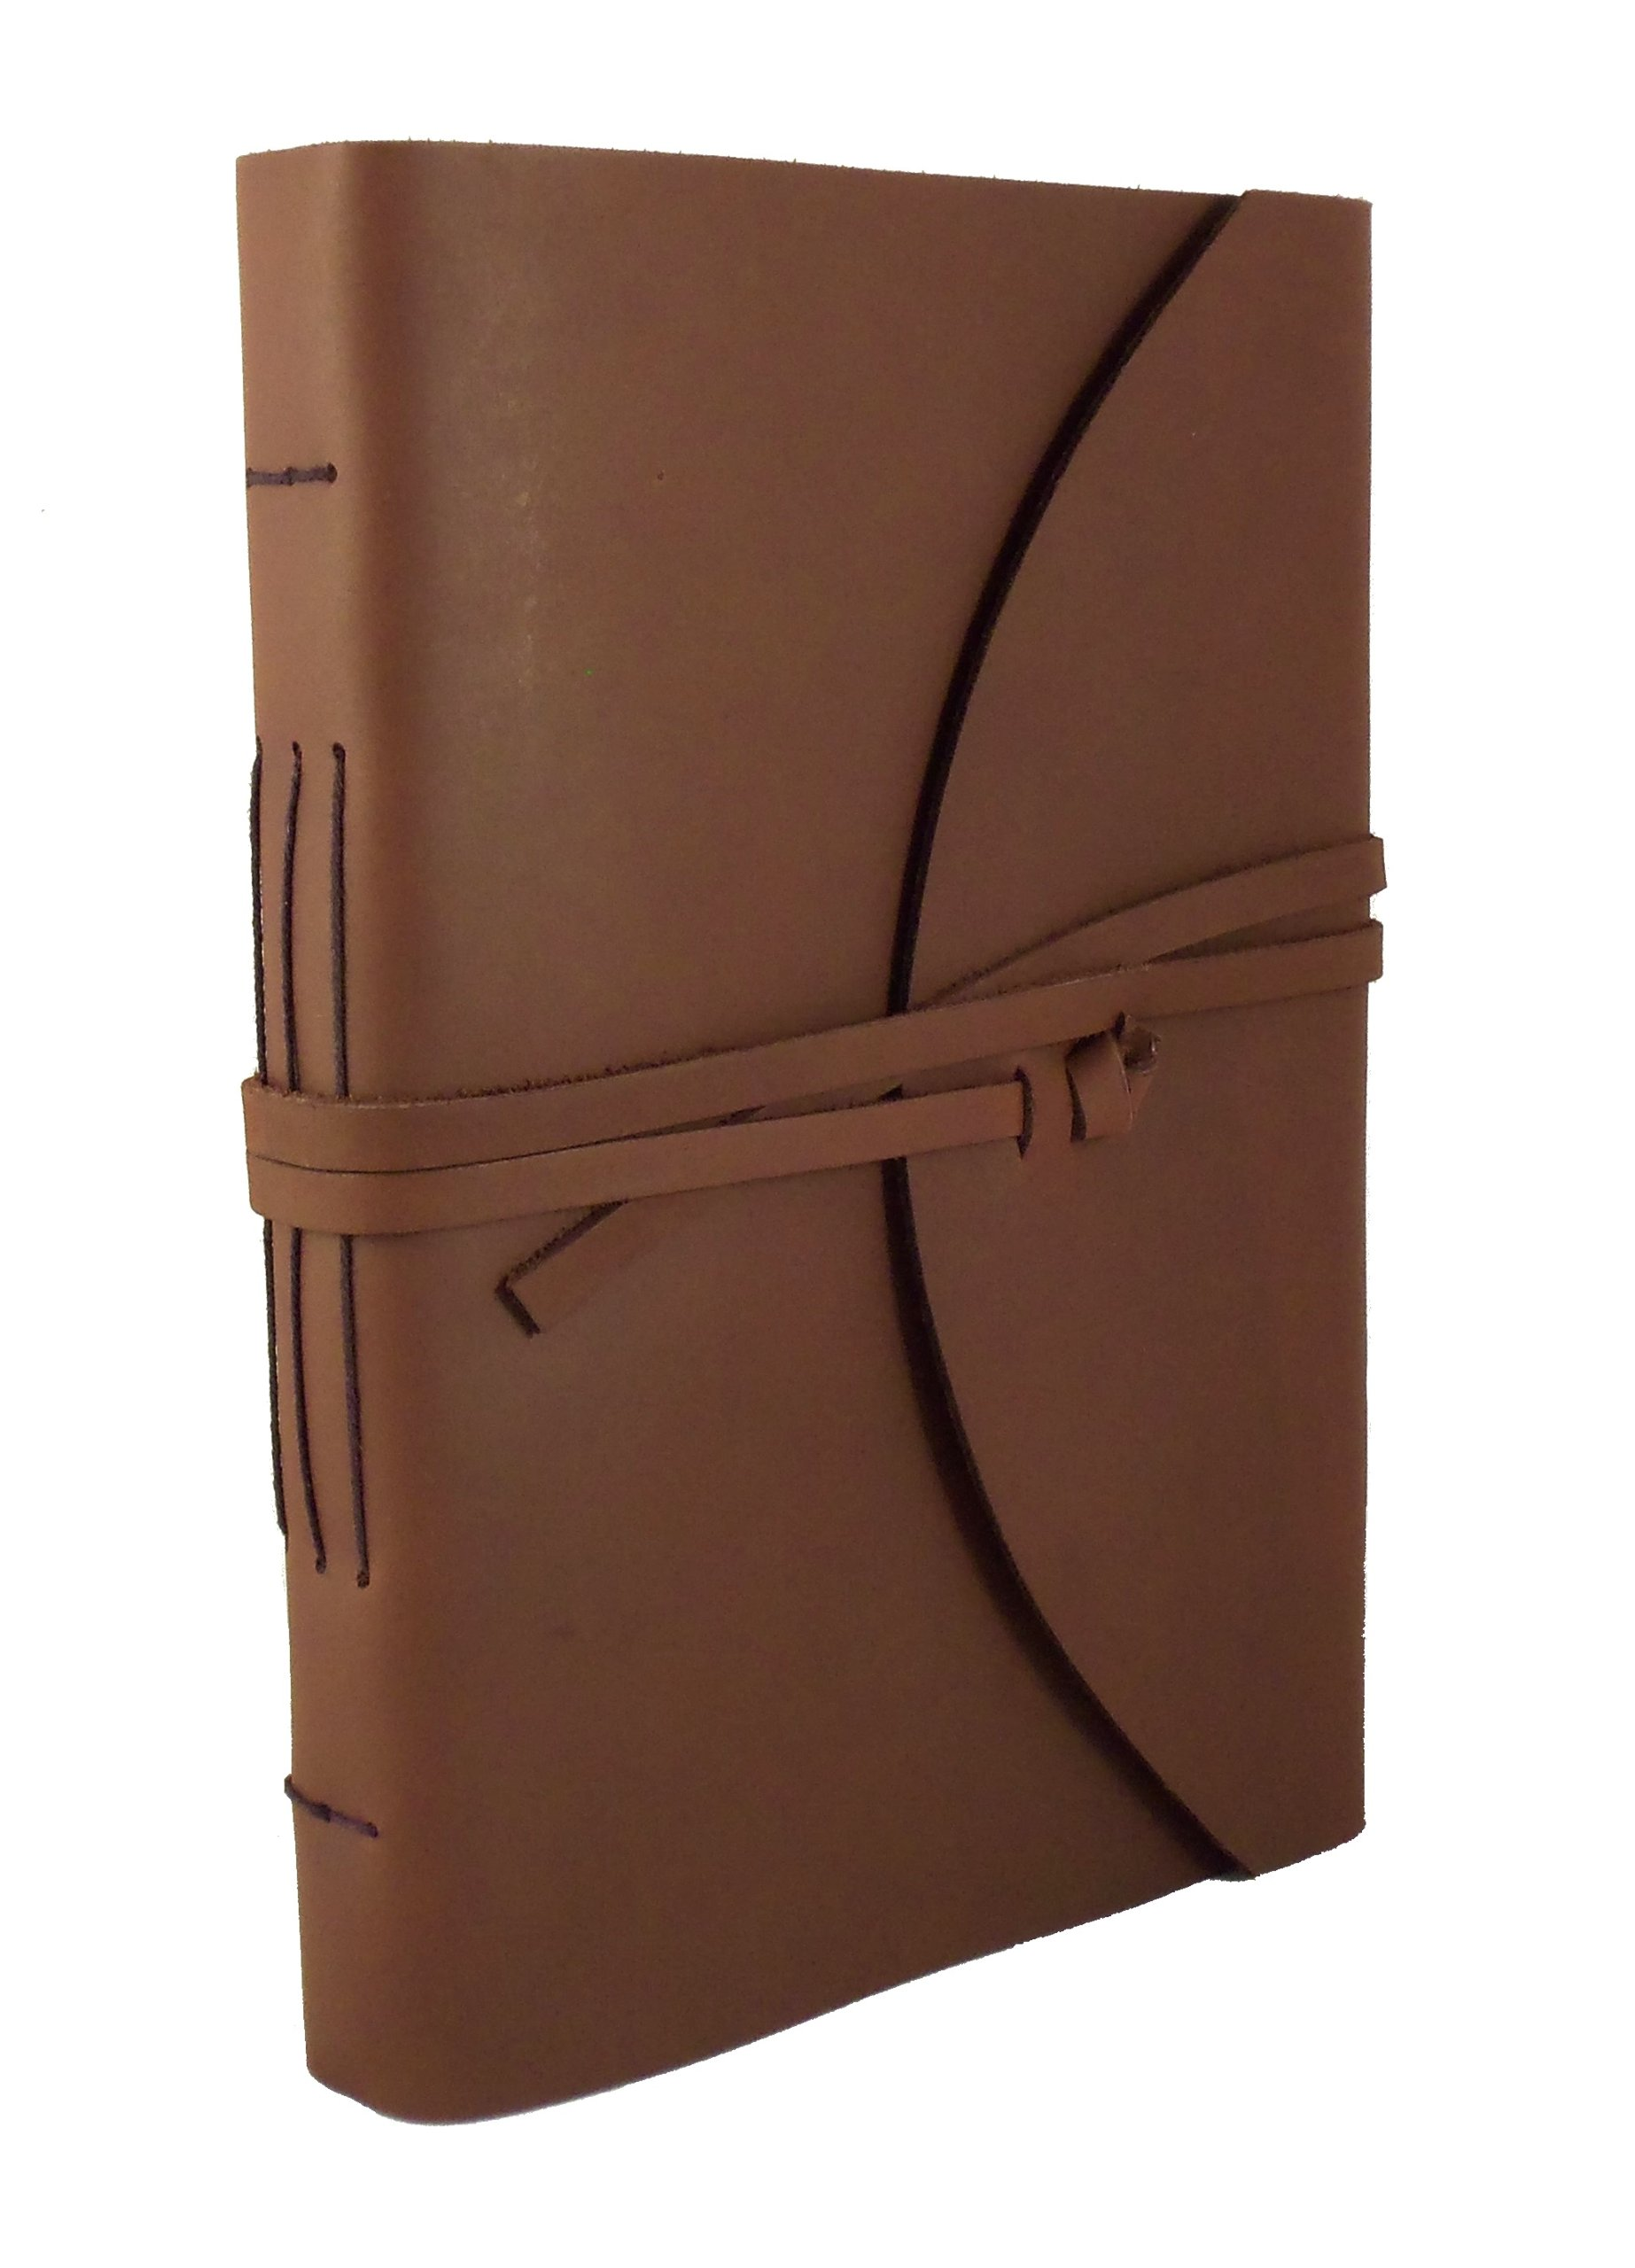 Large Genuine Leather Legacy Photo Album with Gift Box - 9''x 12'' - Scrapbook Style Pages - Holds 200 4x6 or 5x7 Photos by Rustic Ridge Leather